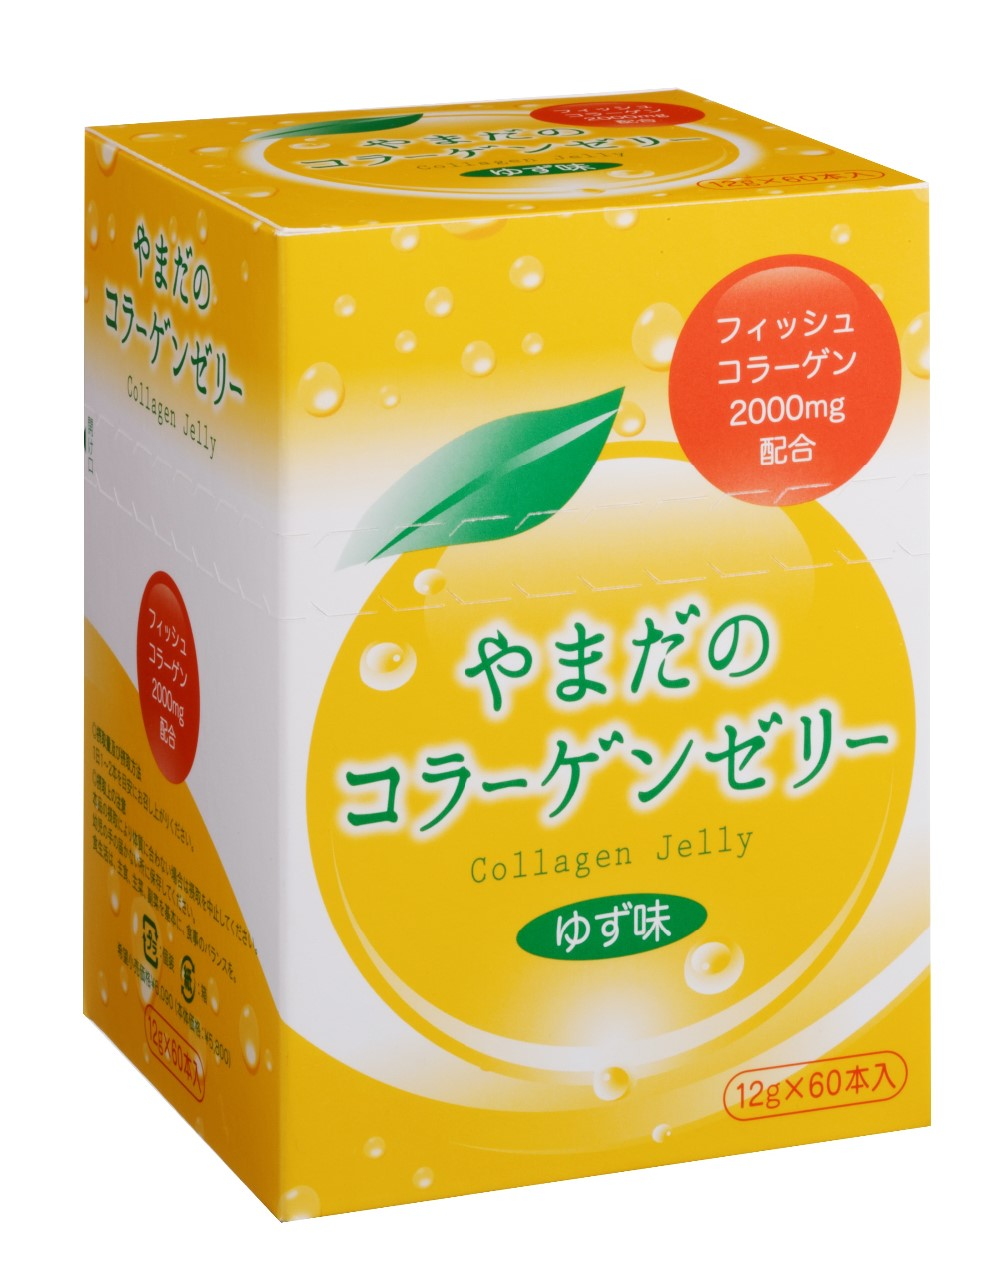 Anti-aging and Healthy and Delicious japanese collagen powder,Collagen Jelly for Health and Diet , small lot order available